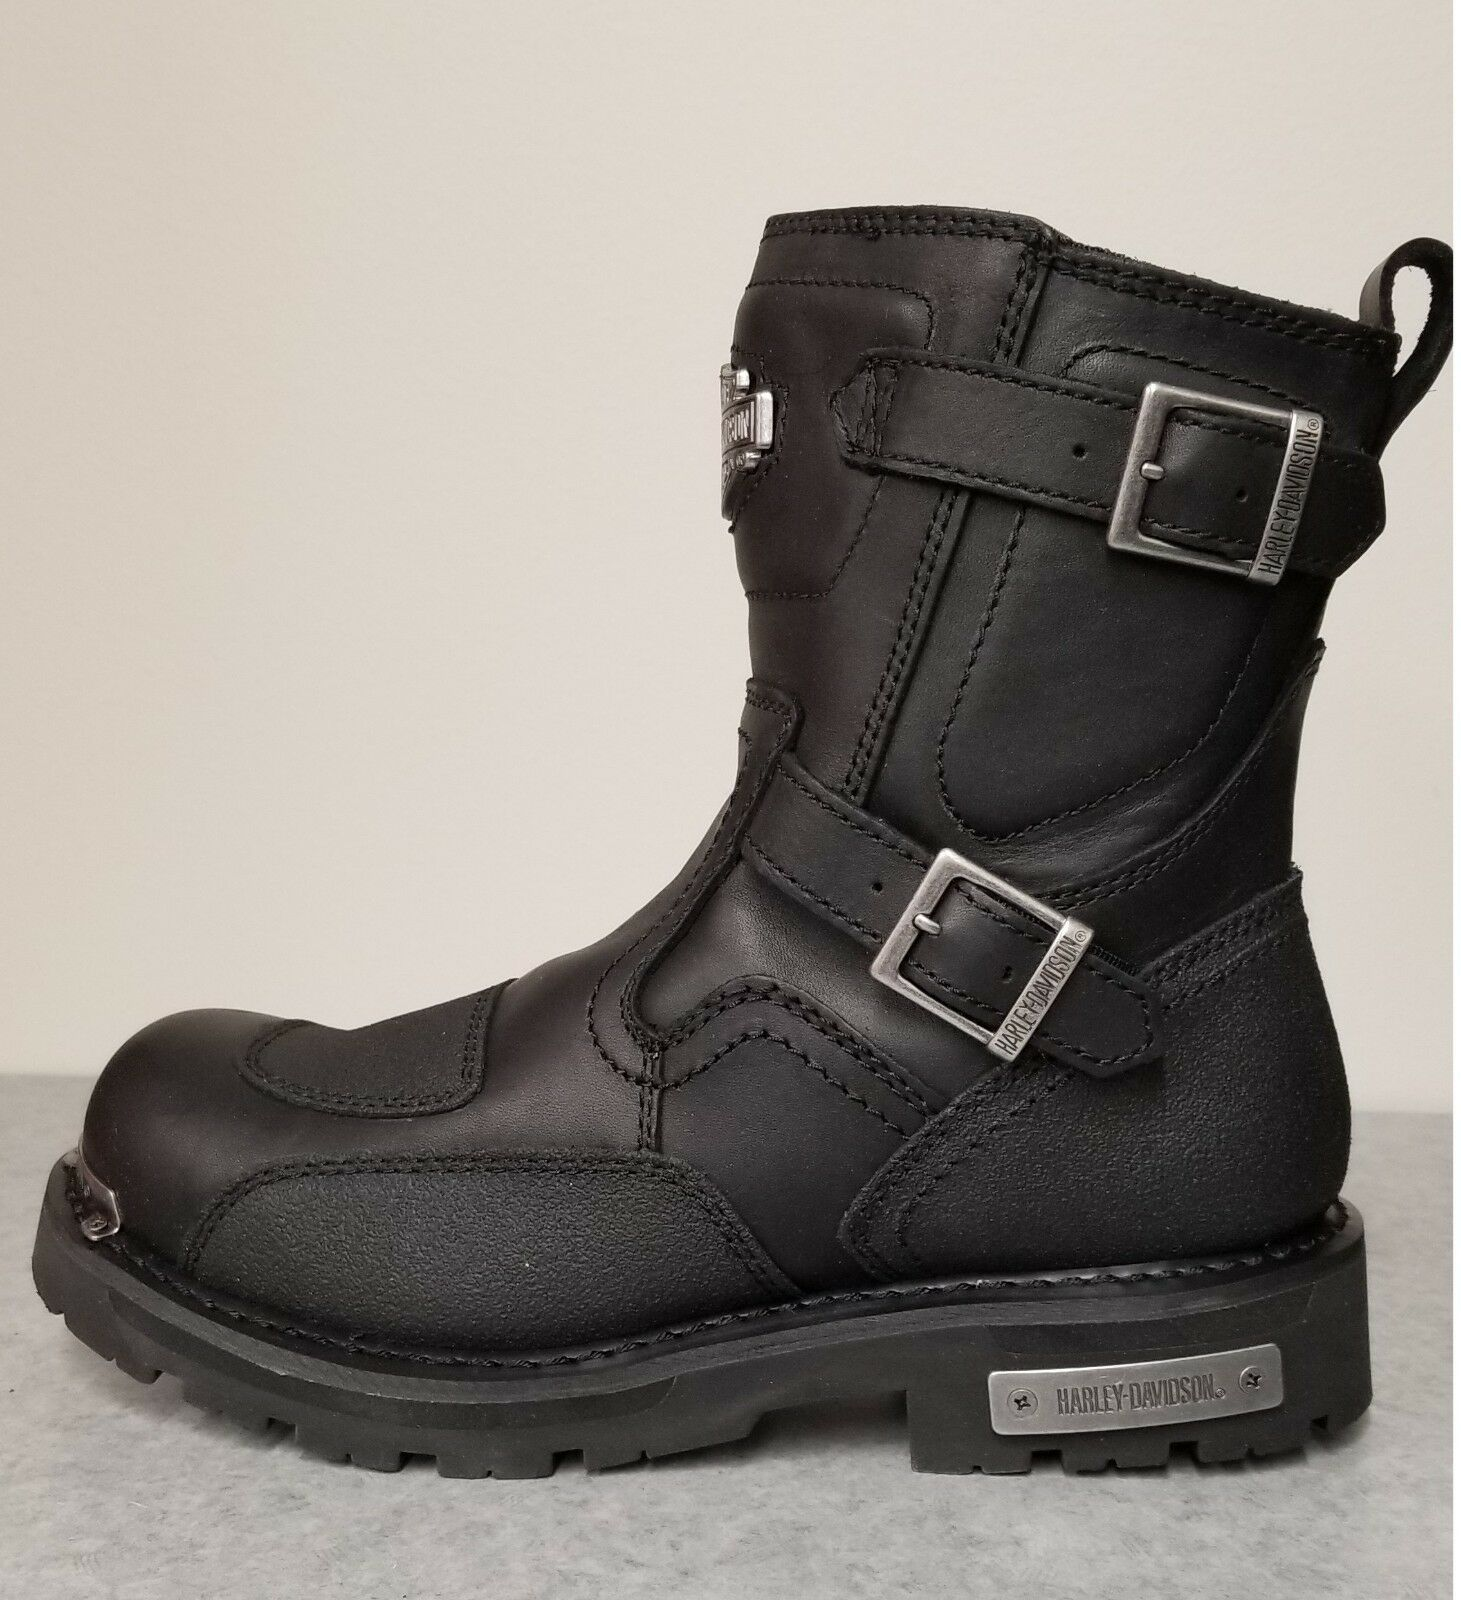 NEW Harley-Davidson Men's Manifold Riding Boot Style  D91692